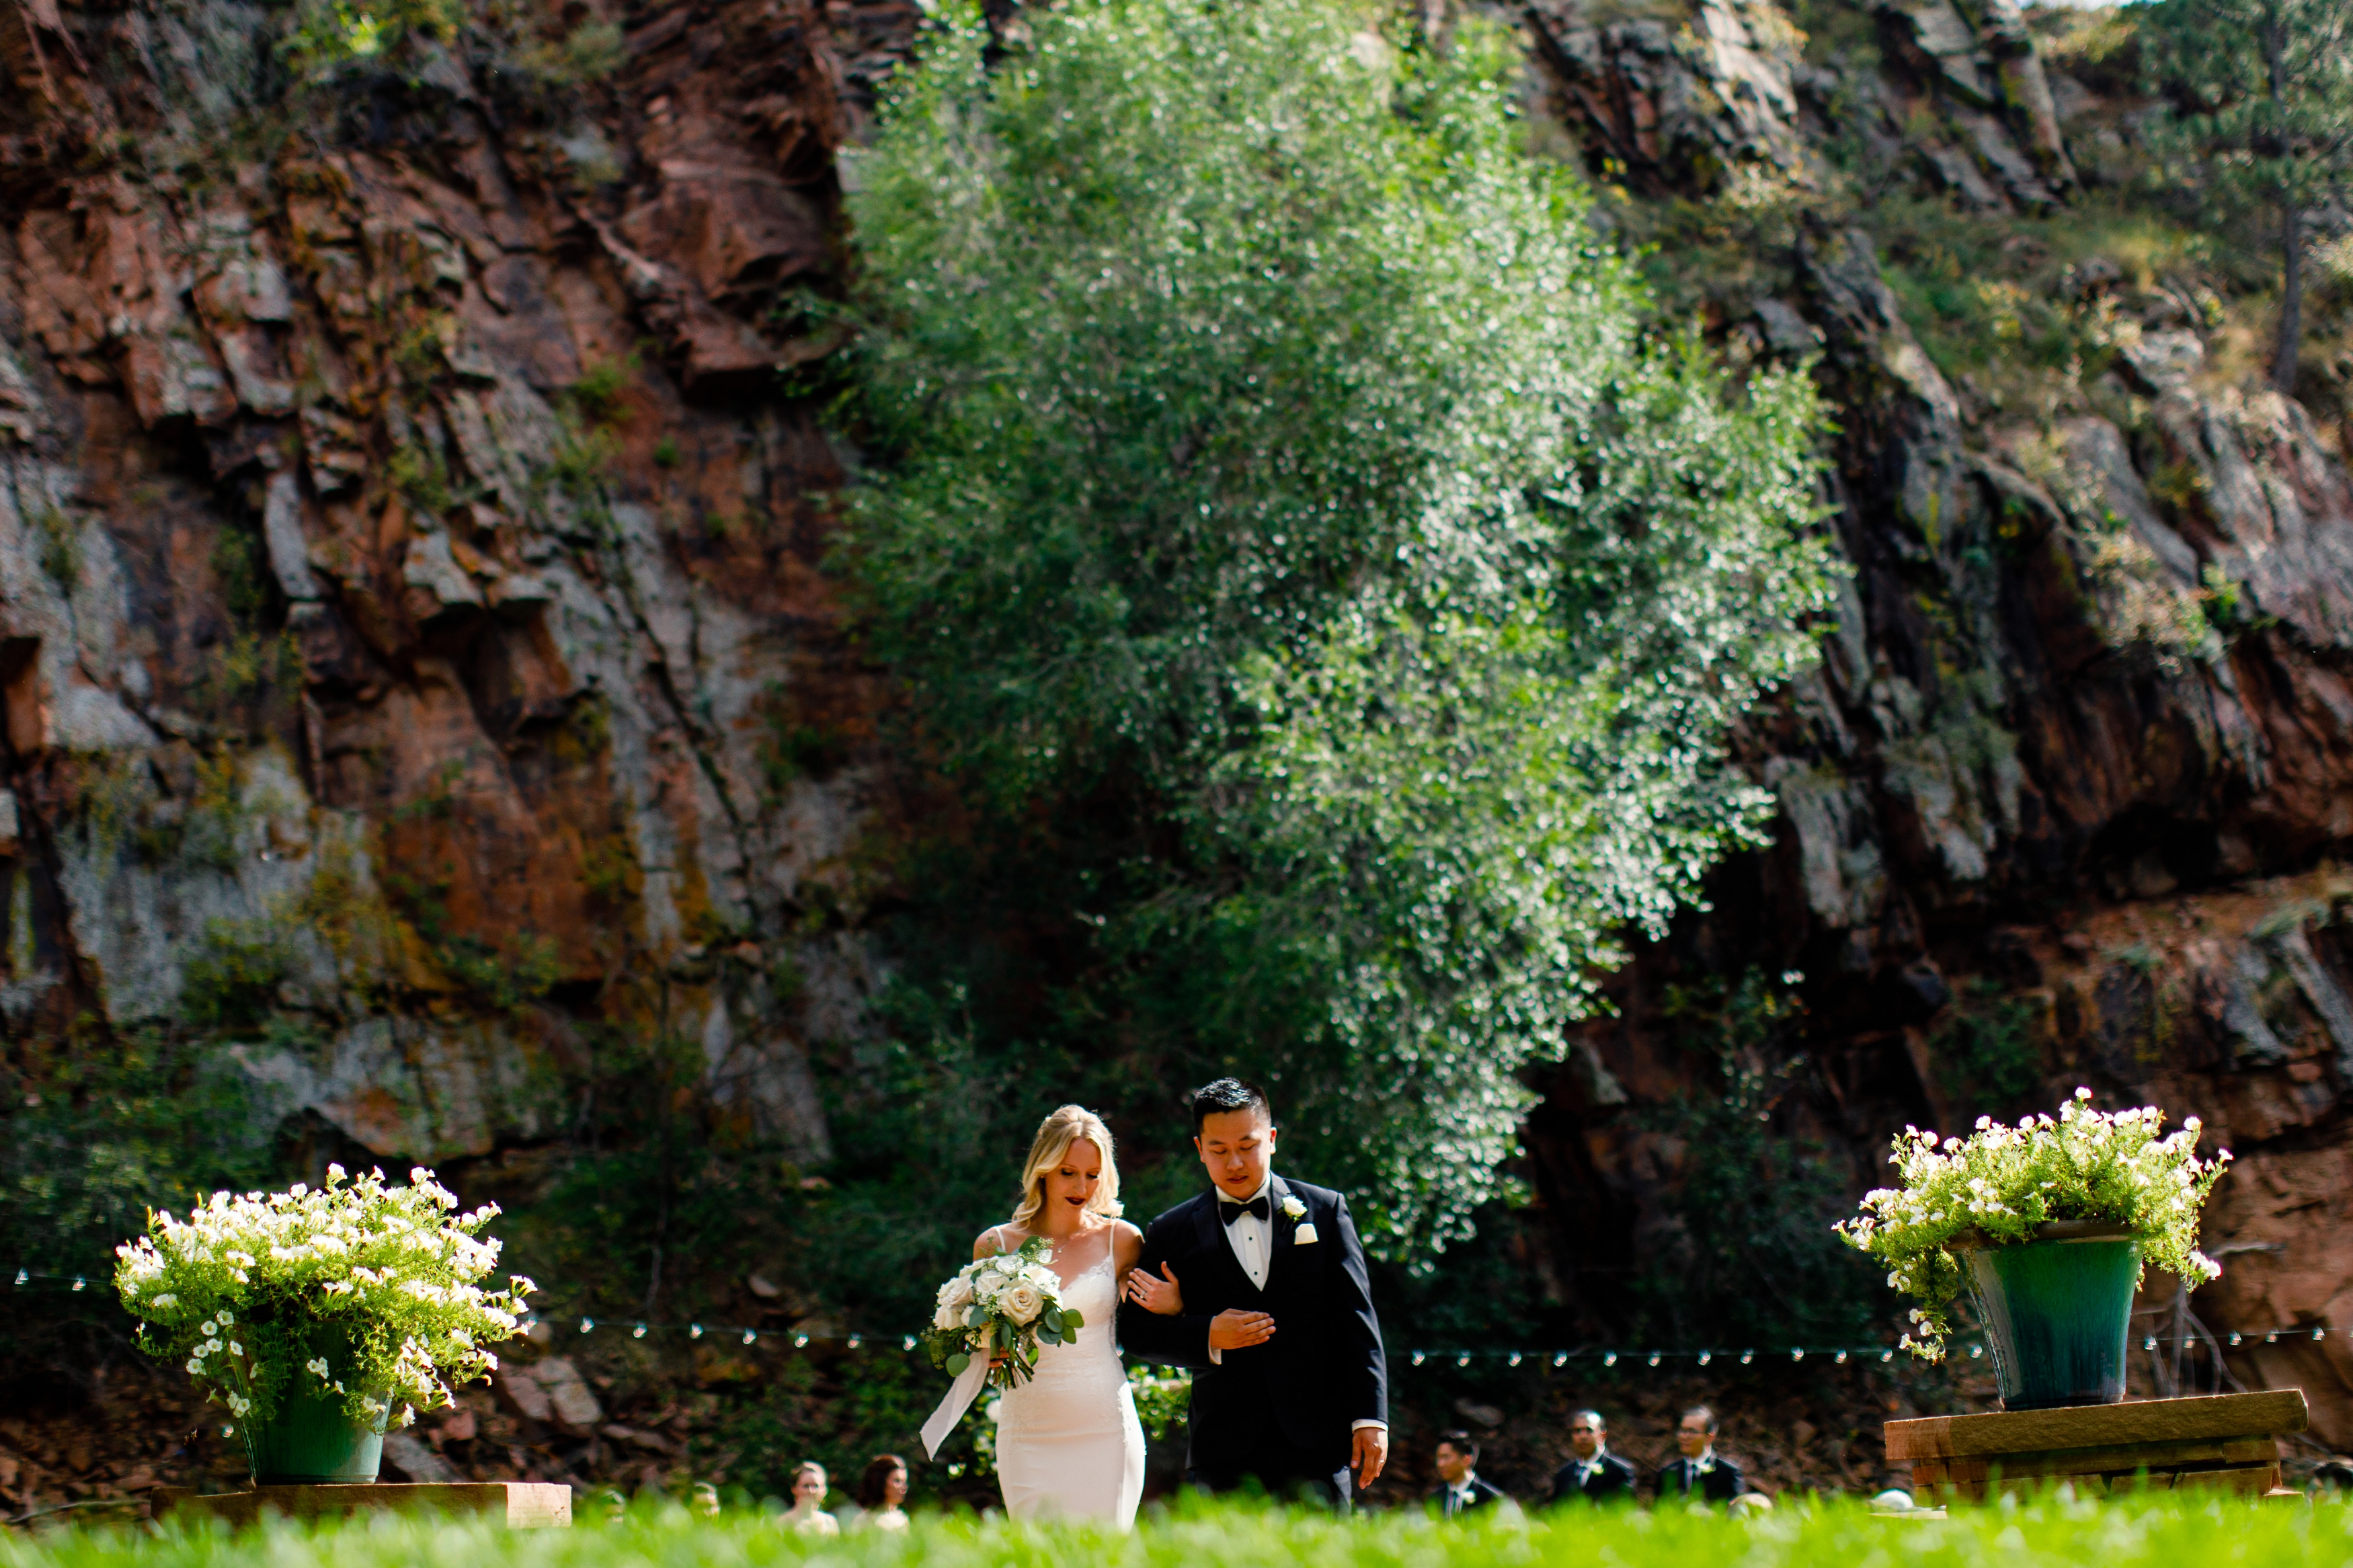 The River Bend Wedding Venue in Lyons CO is a beautiful, quaint location.